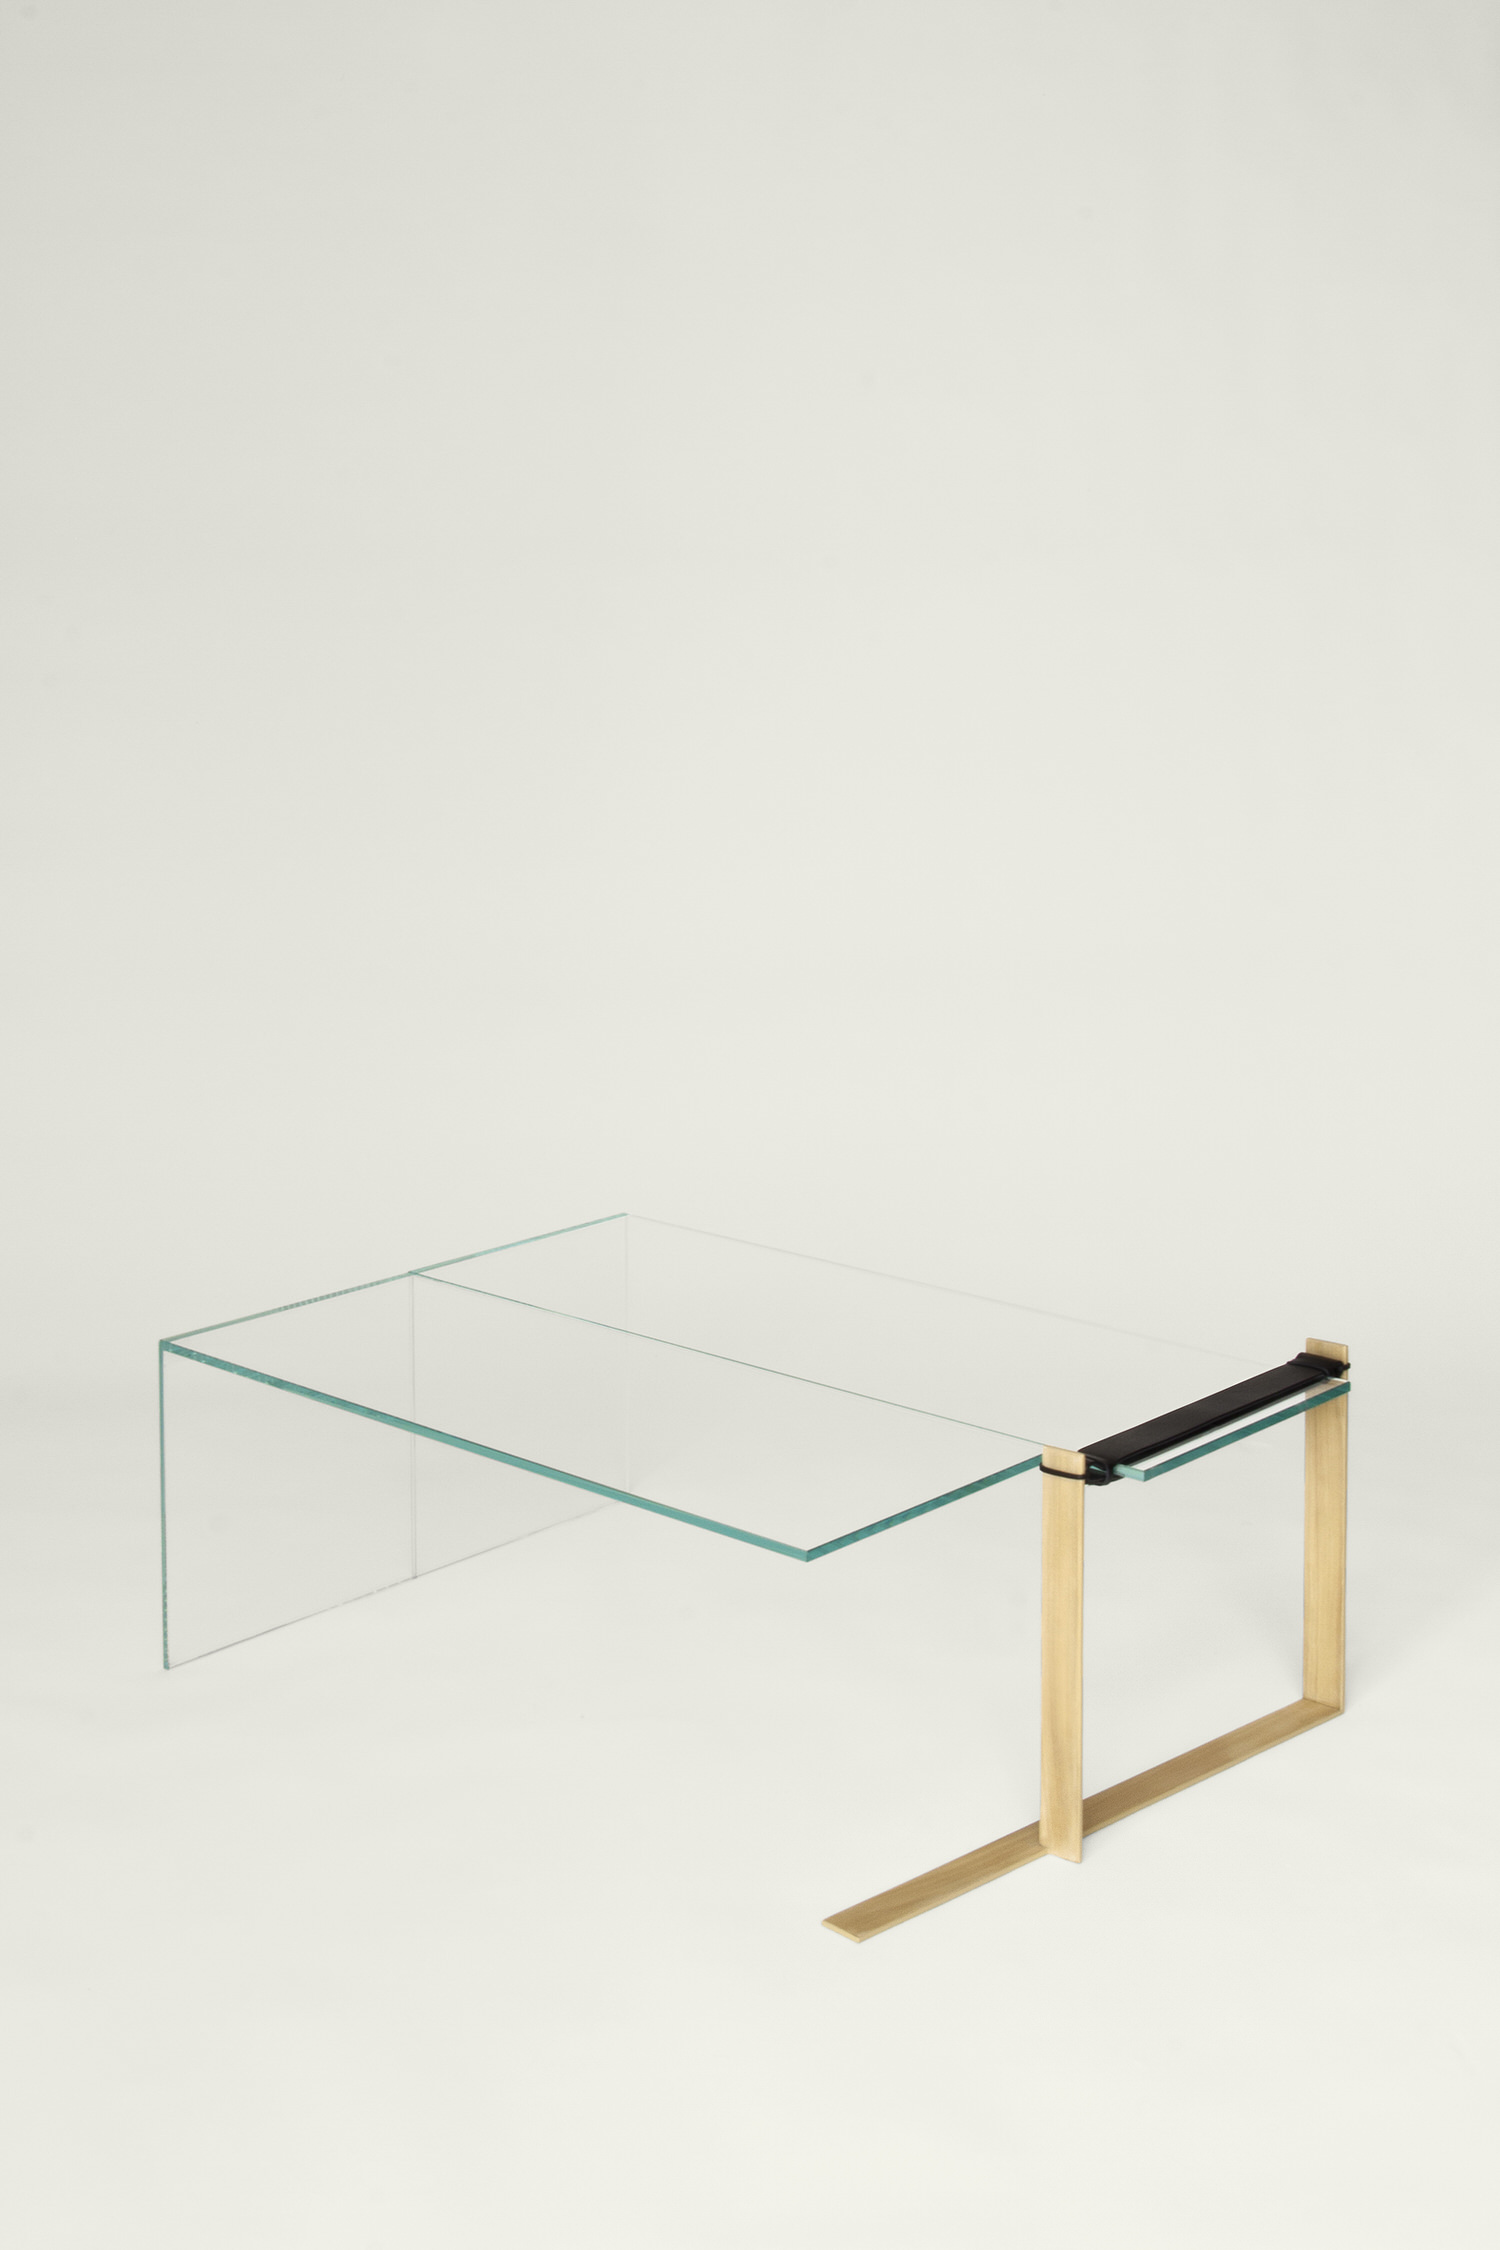 Grace Prince, Clear Coffee Table, Collectible Design | Yellowtrace